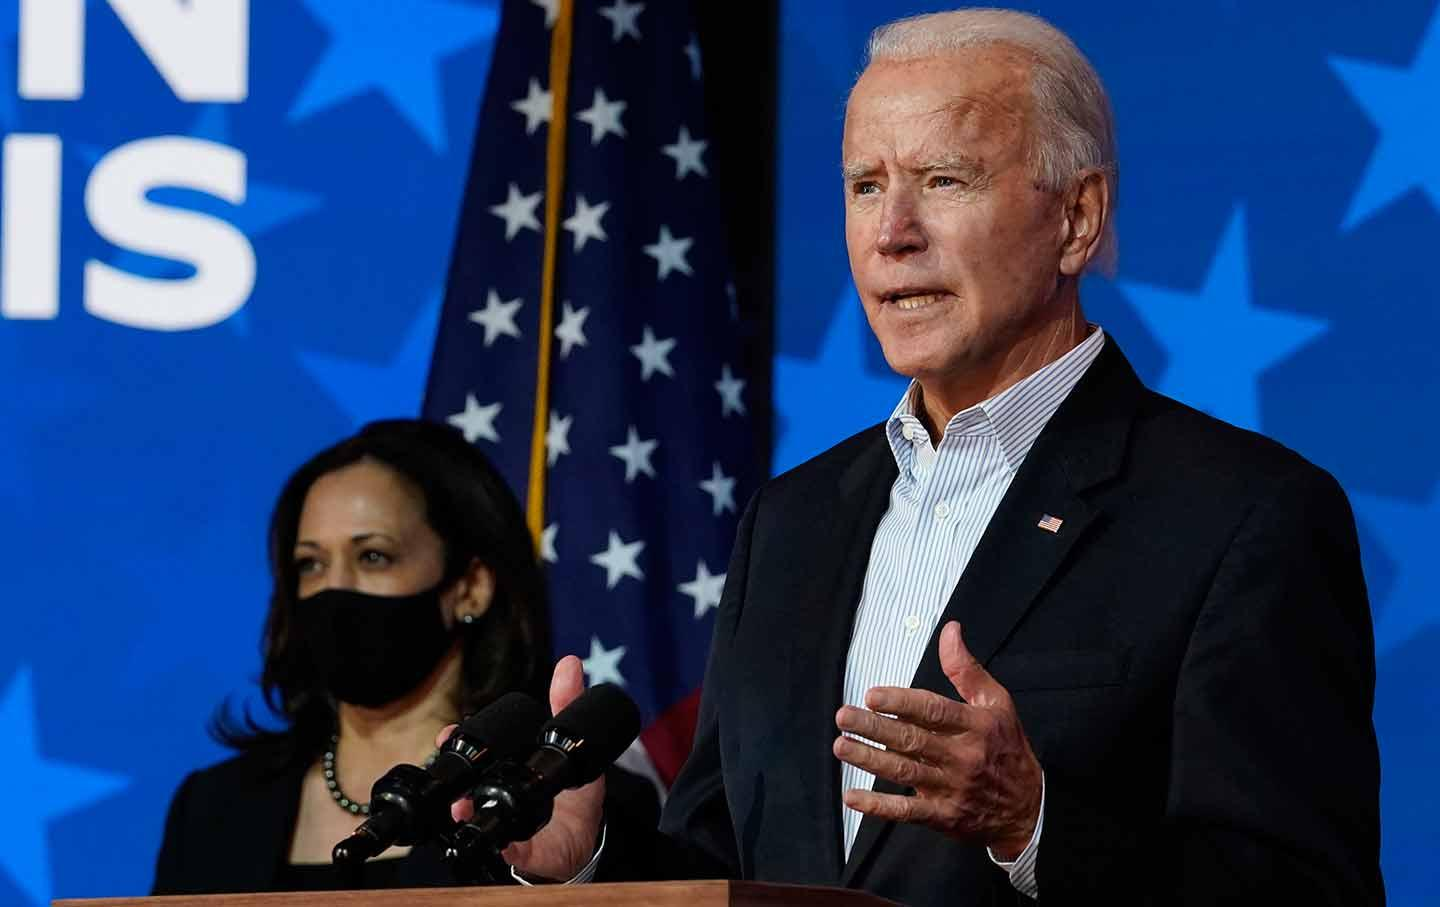 Joe Biden Confirms He Will Not Be The US President Until January 20th - He Has A Message For Everyone